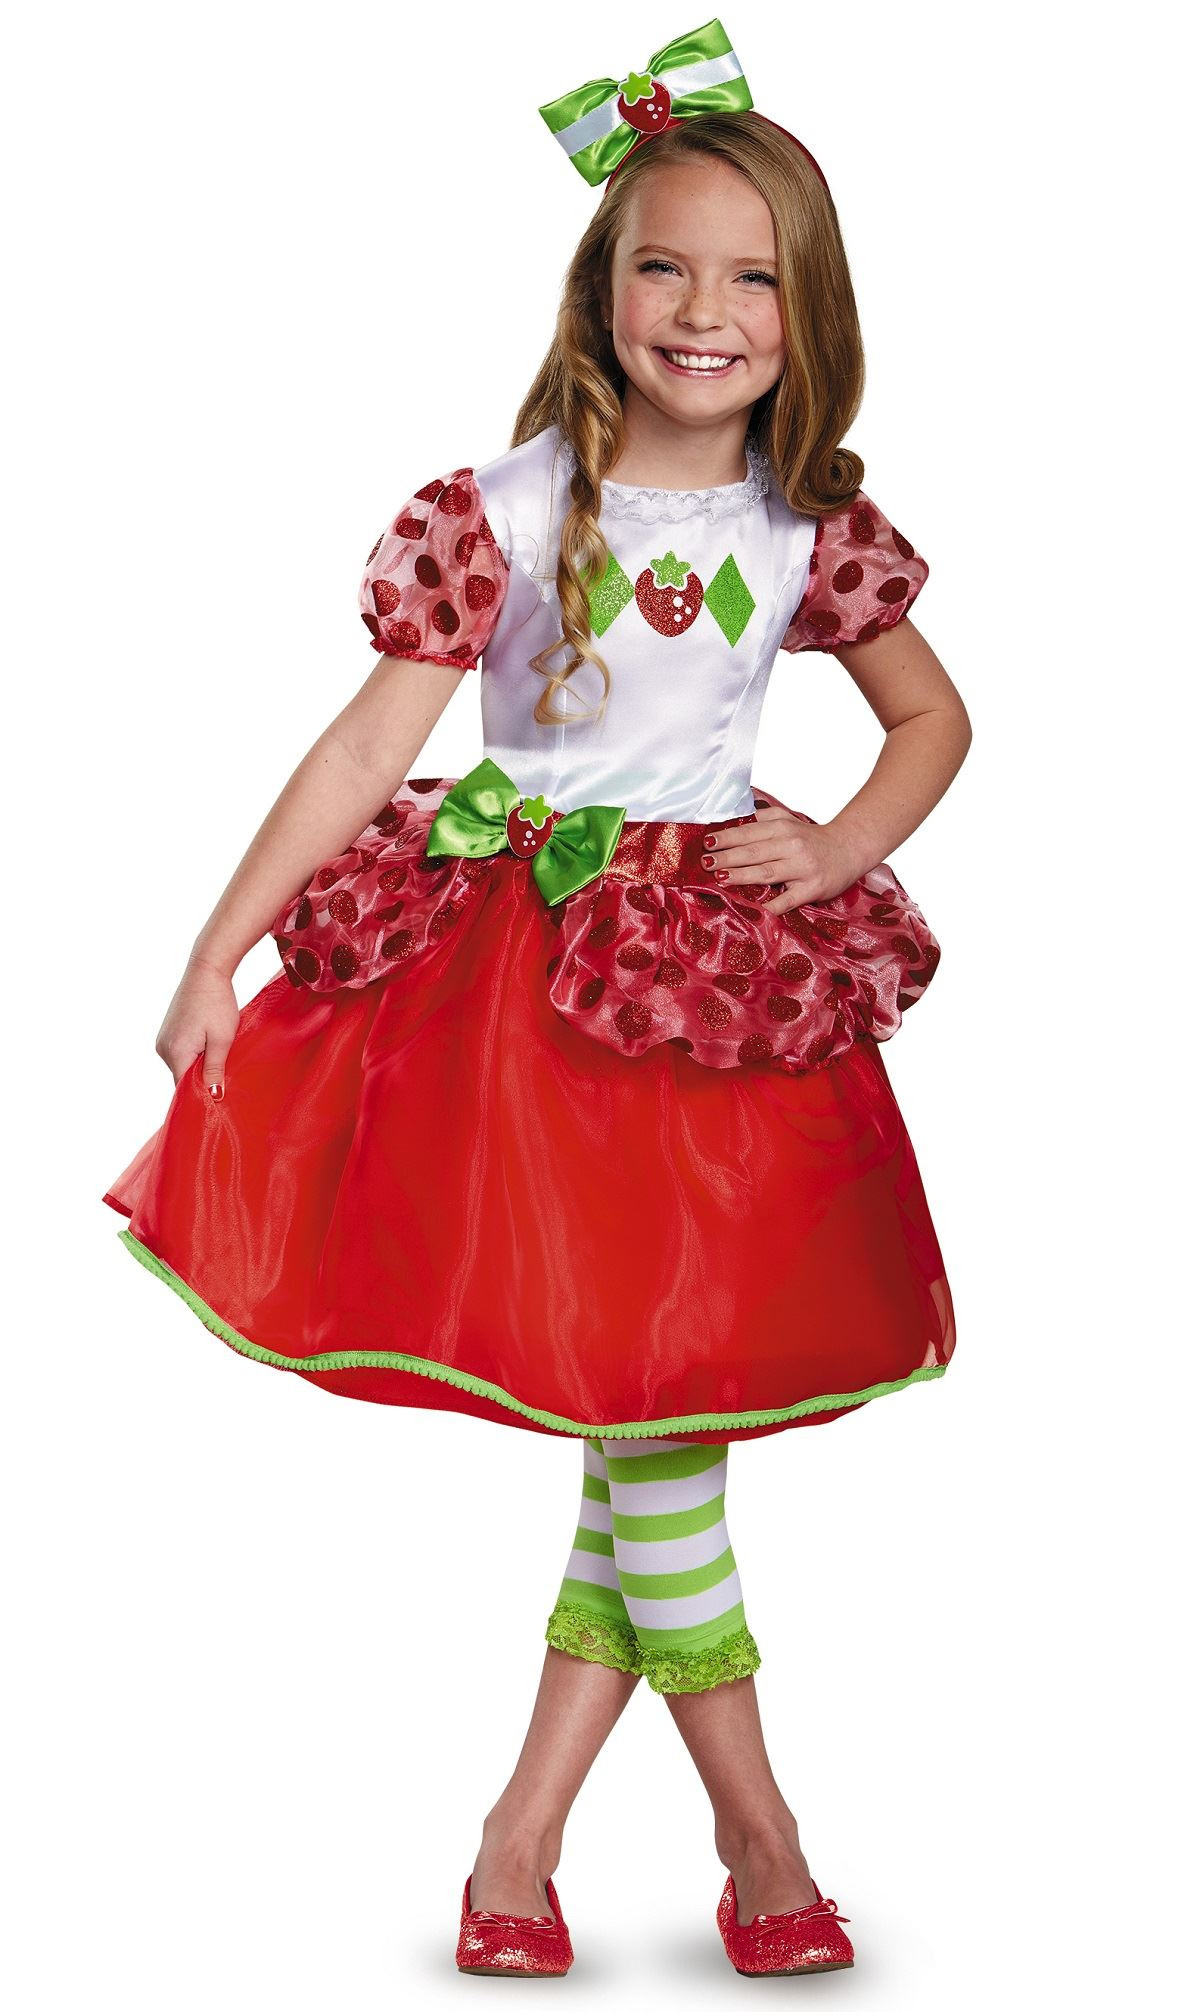 Strawberry Shortcake Halloween Costume  Kids Strawberry Shortcake Girls Costume $37 99